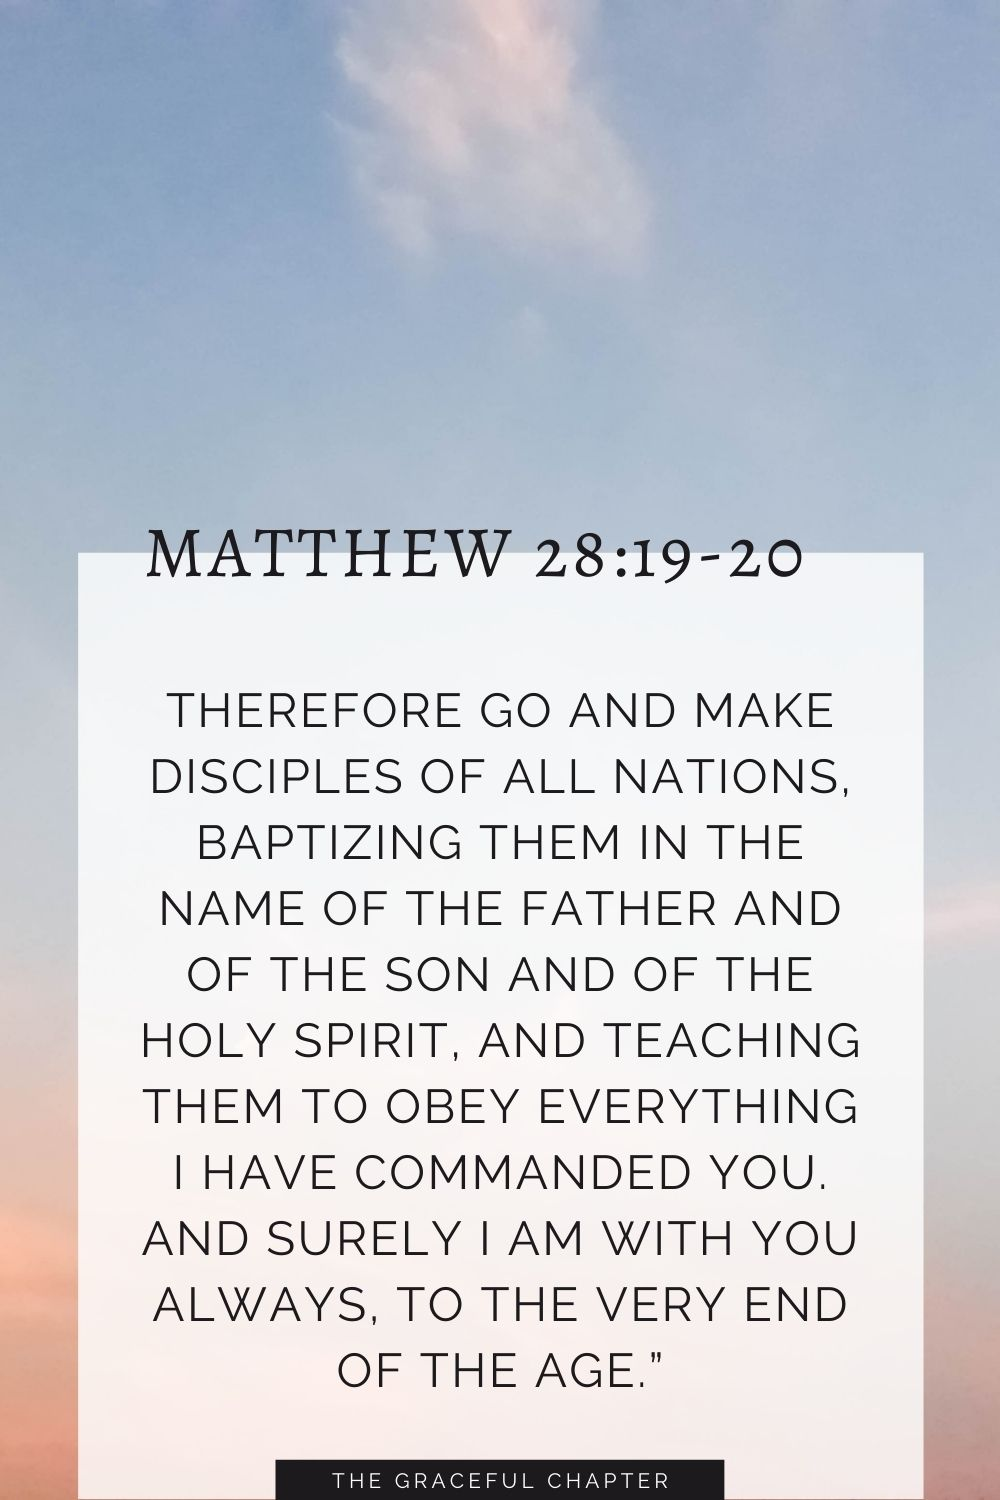 """Therefore go and make disciples of all nations,baptizing them in the name of the Father and of the Son and of the Holy Spirit,and teachingthem to obey everything I have commanded you. And surely I am with youalways, to the very end of the age."""" Matthew 28:19-20"""